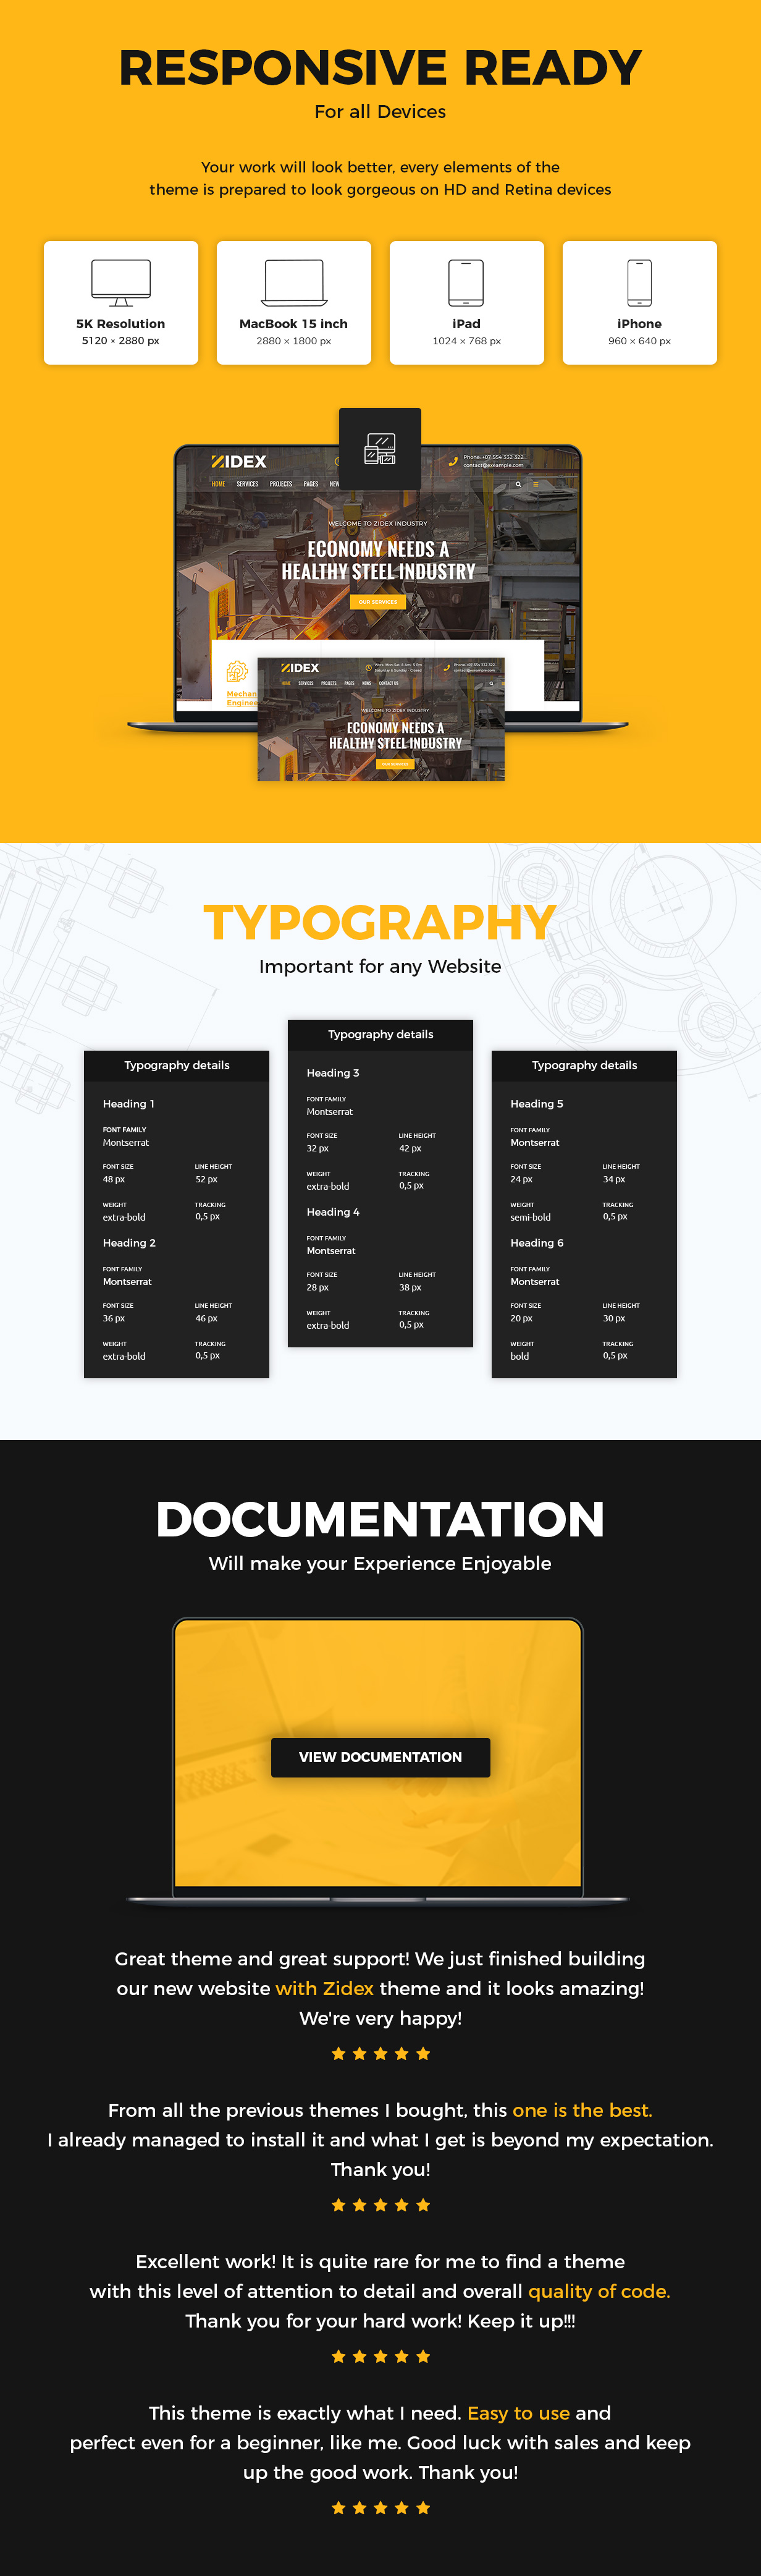 Zidex - Industrial & Factory WordPress Theme - 3